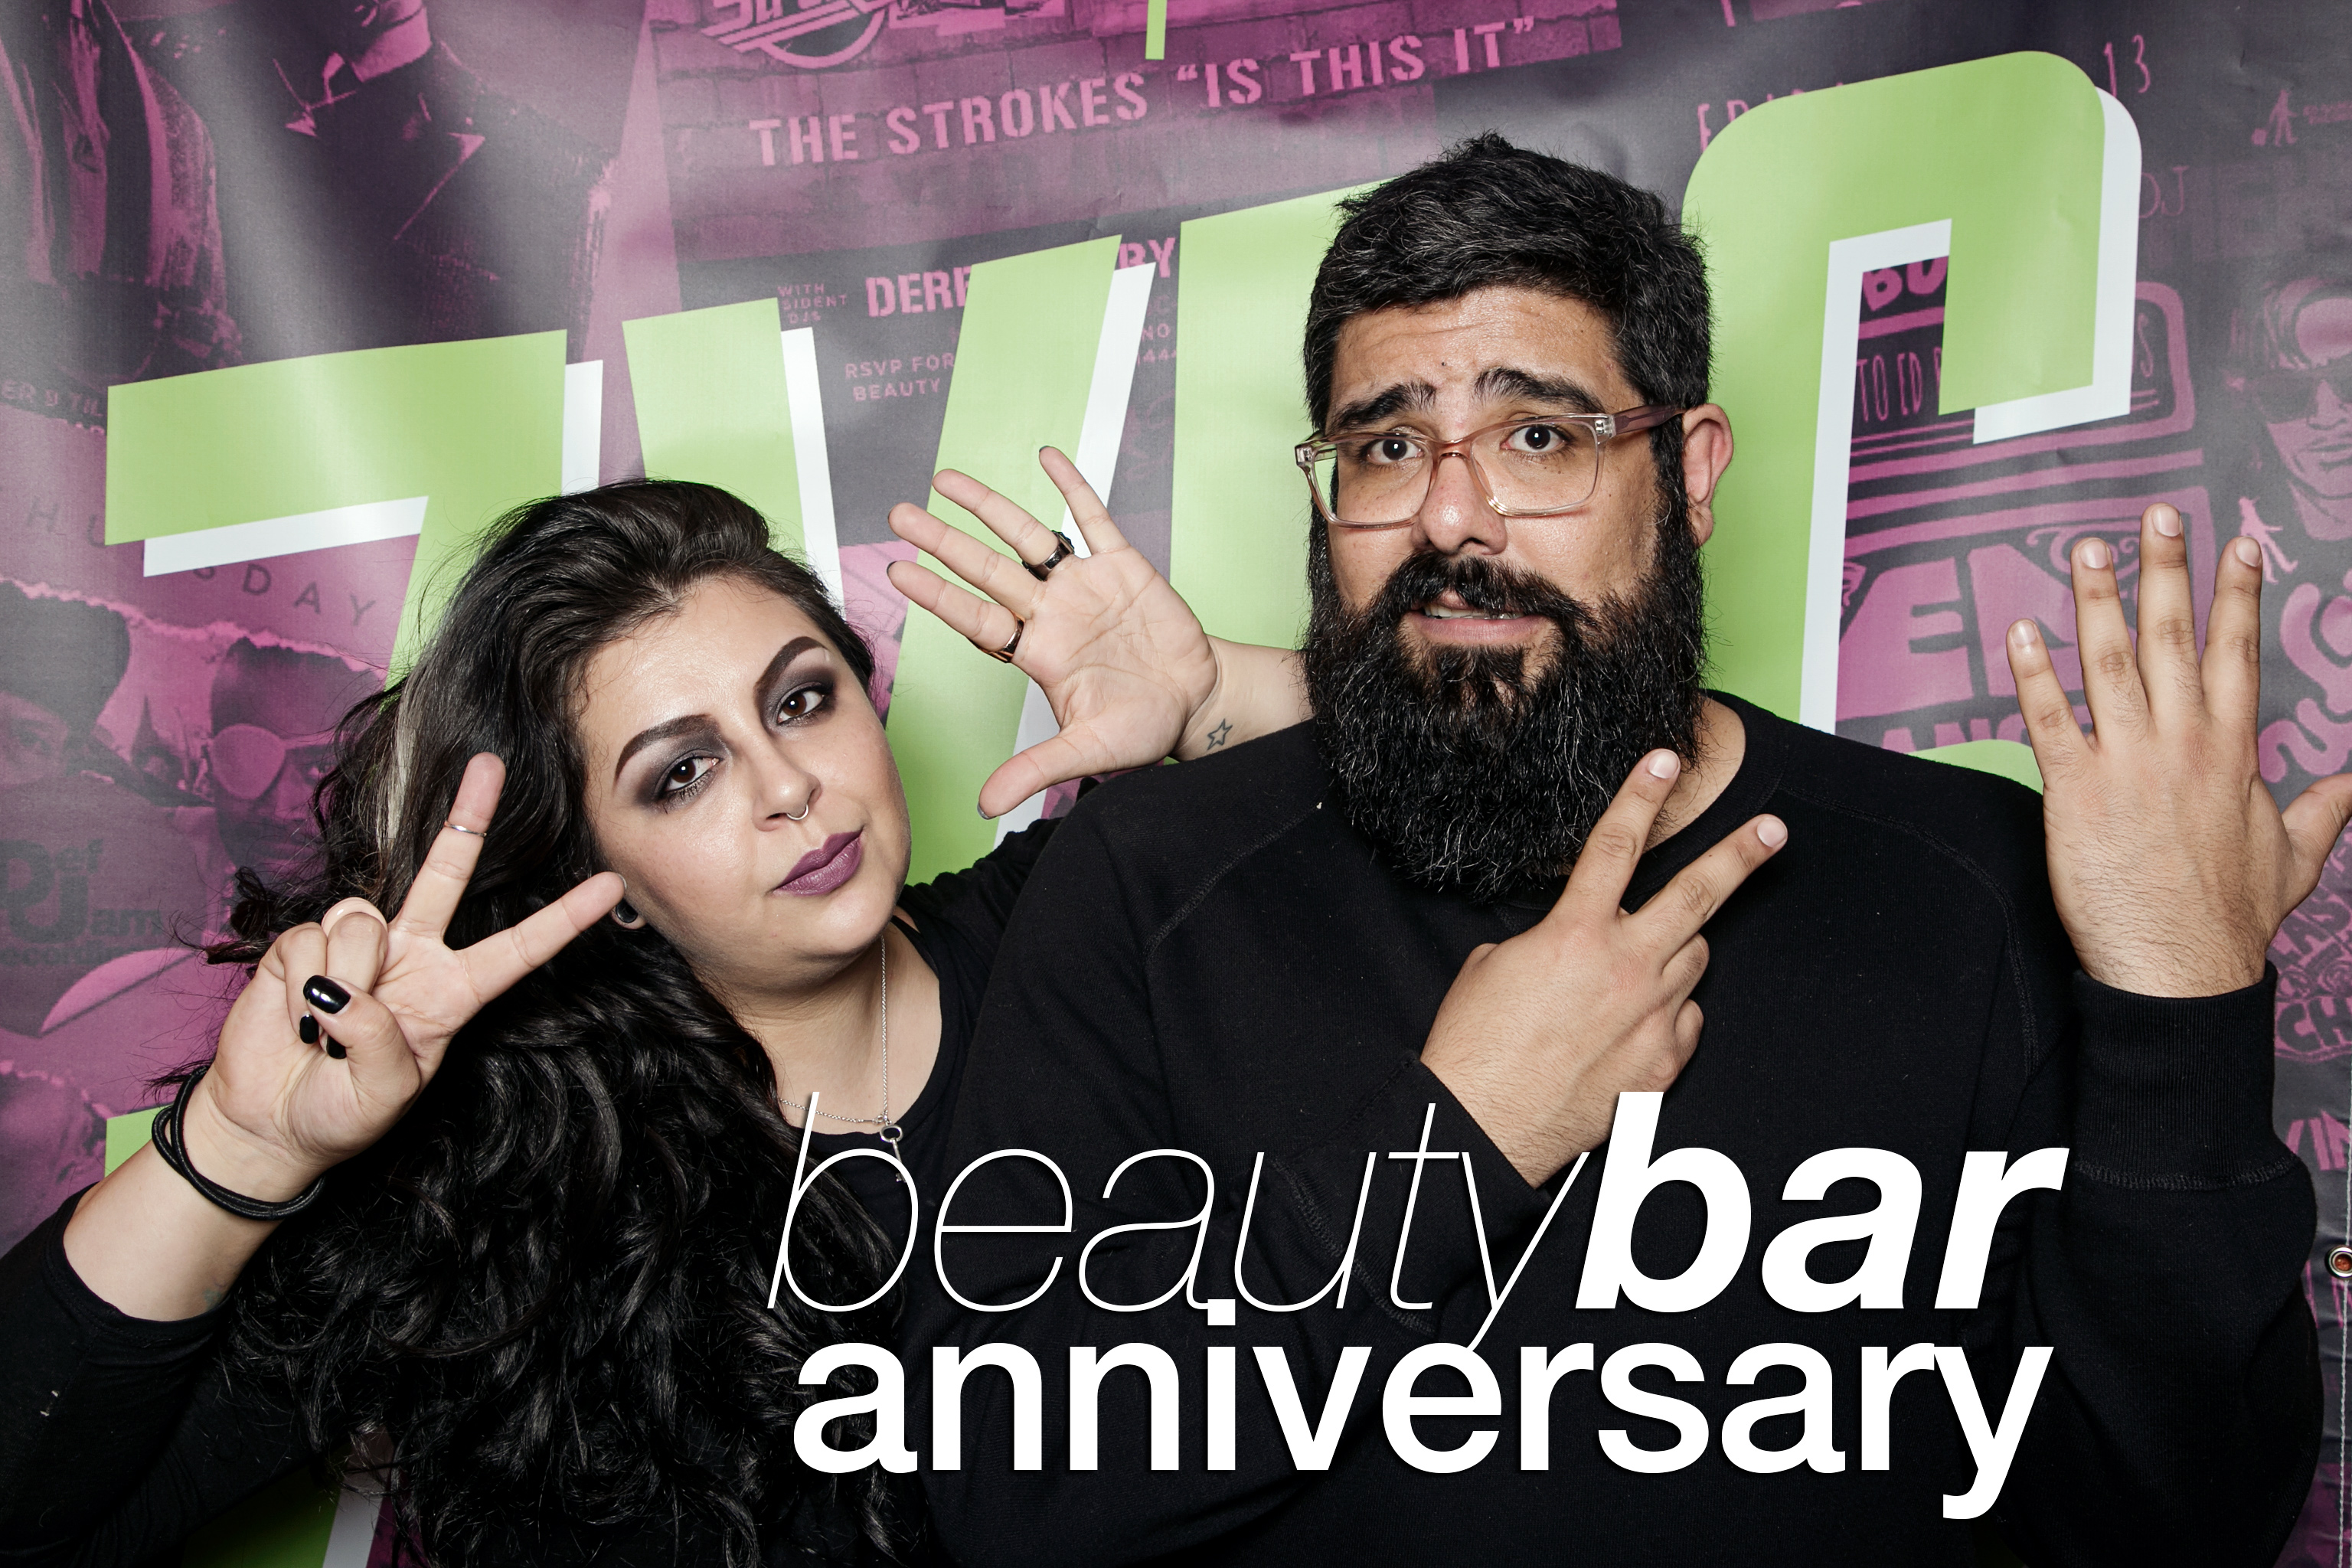 photo booth parties from beauty bar's 7th anniversary, march 2017